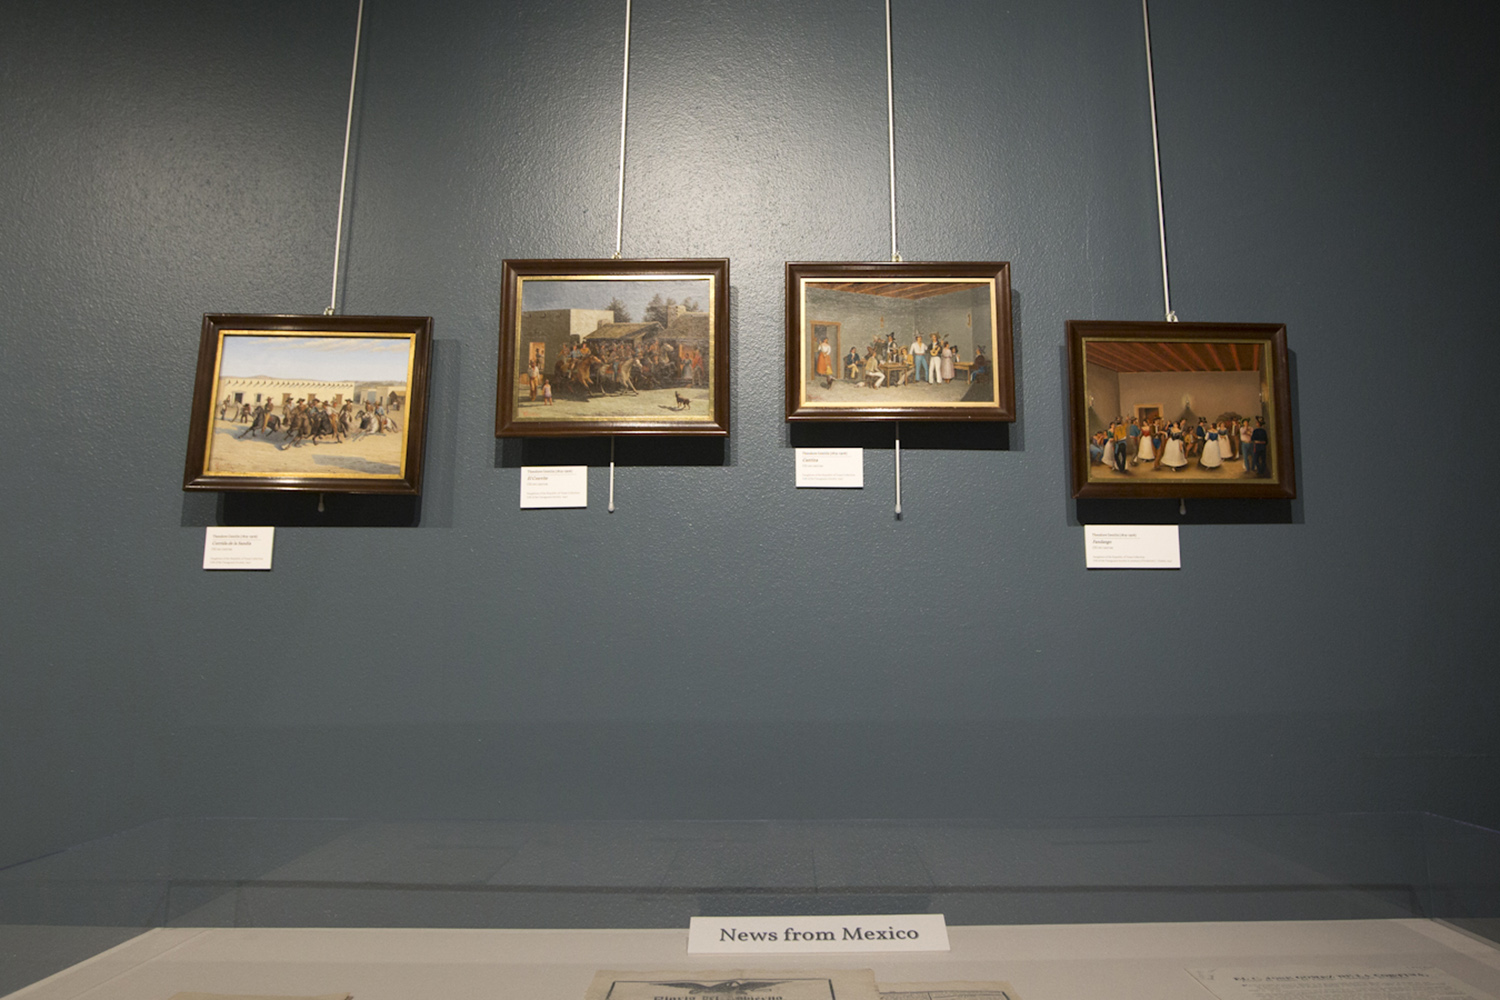 Scenes of early San Antonio painted by famous painter Theodore Gentilz hang on display in the Daughters of the Republic of Texas' new library.